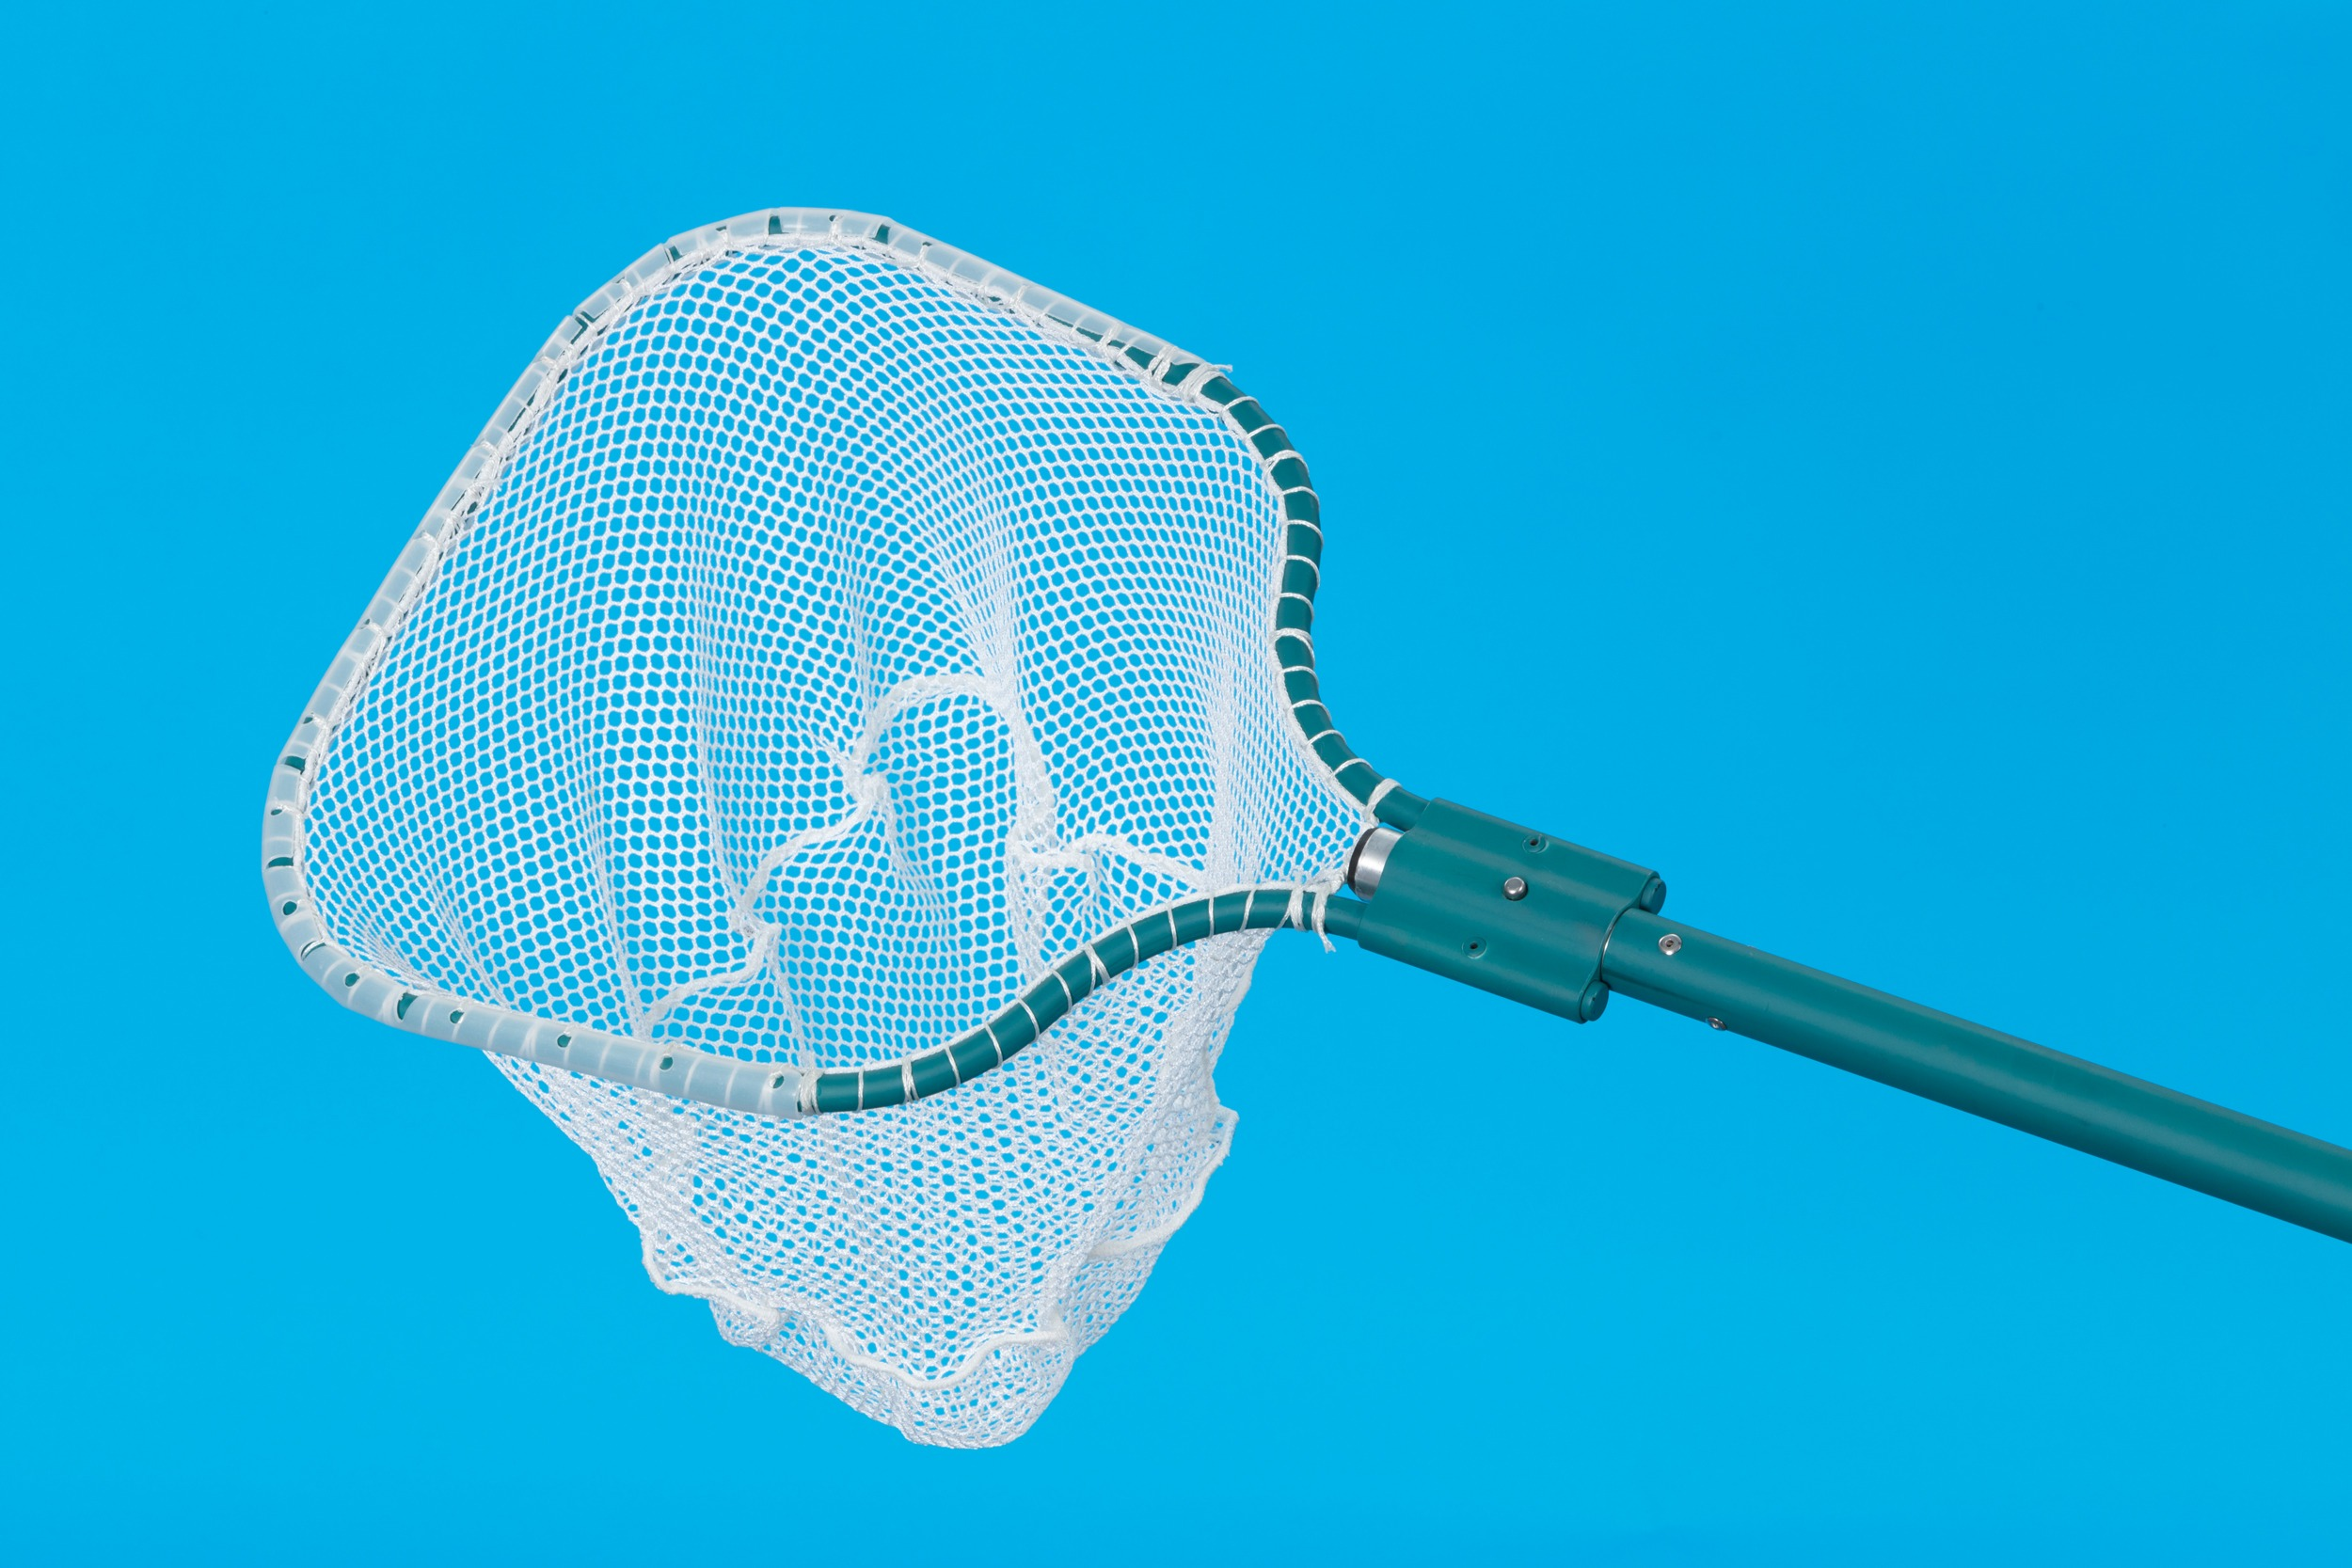 Replacement dip nets duluth fish netsduluth fish nets for Dip nets for fishing